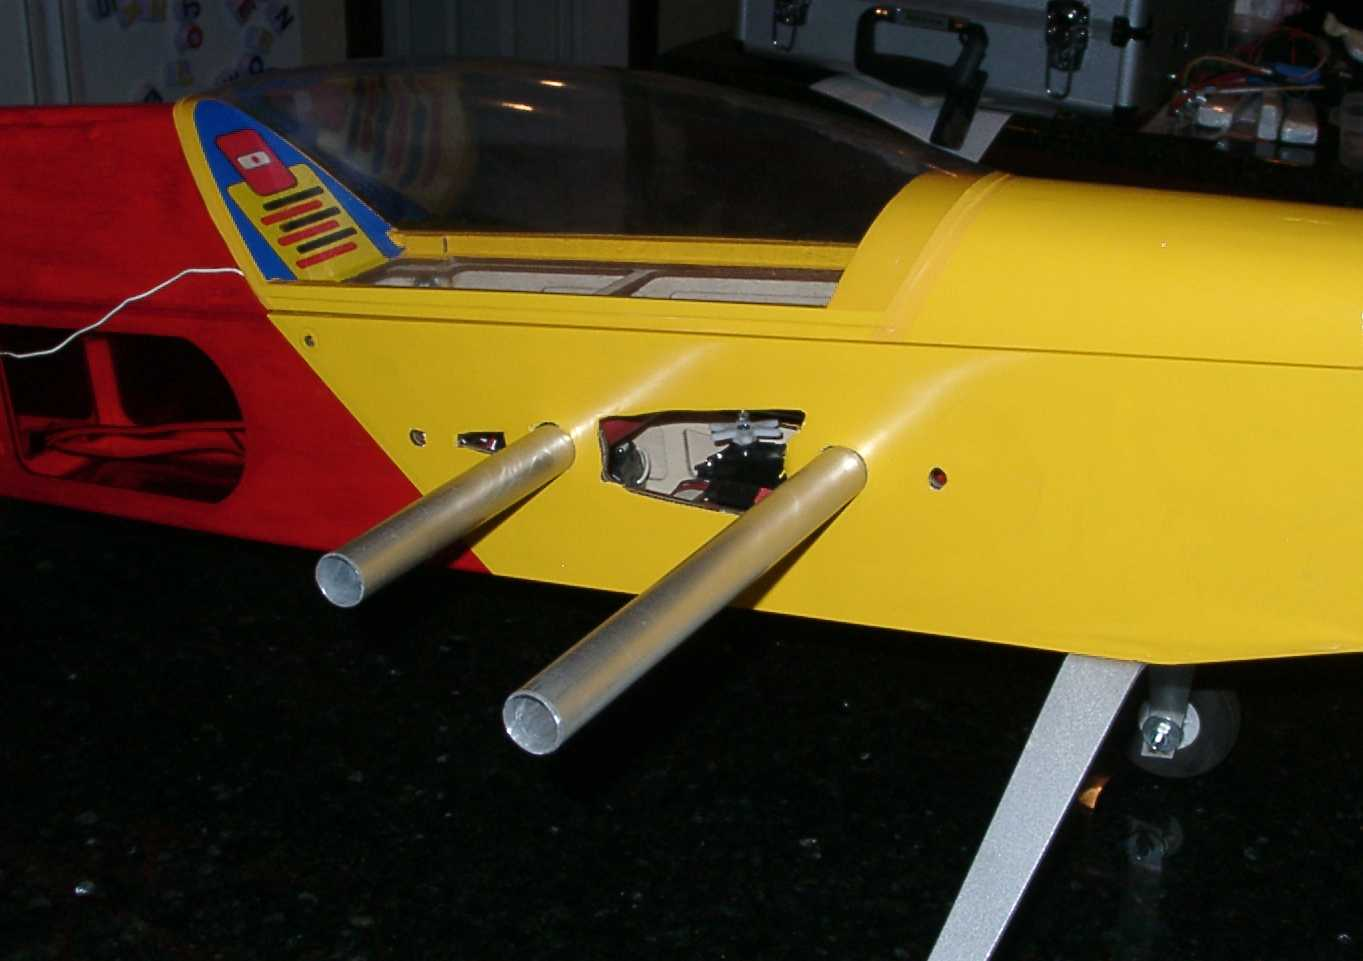 The wings slide on to two aluminum spars that pass through the fuselage. Two nylon bolts secure each wing panel to the fuselage.